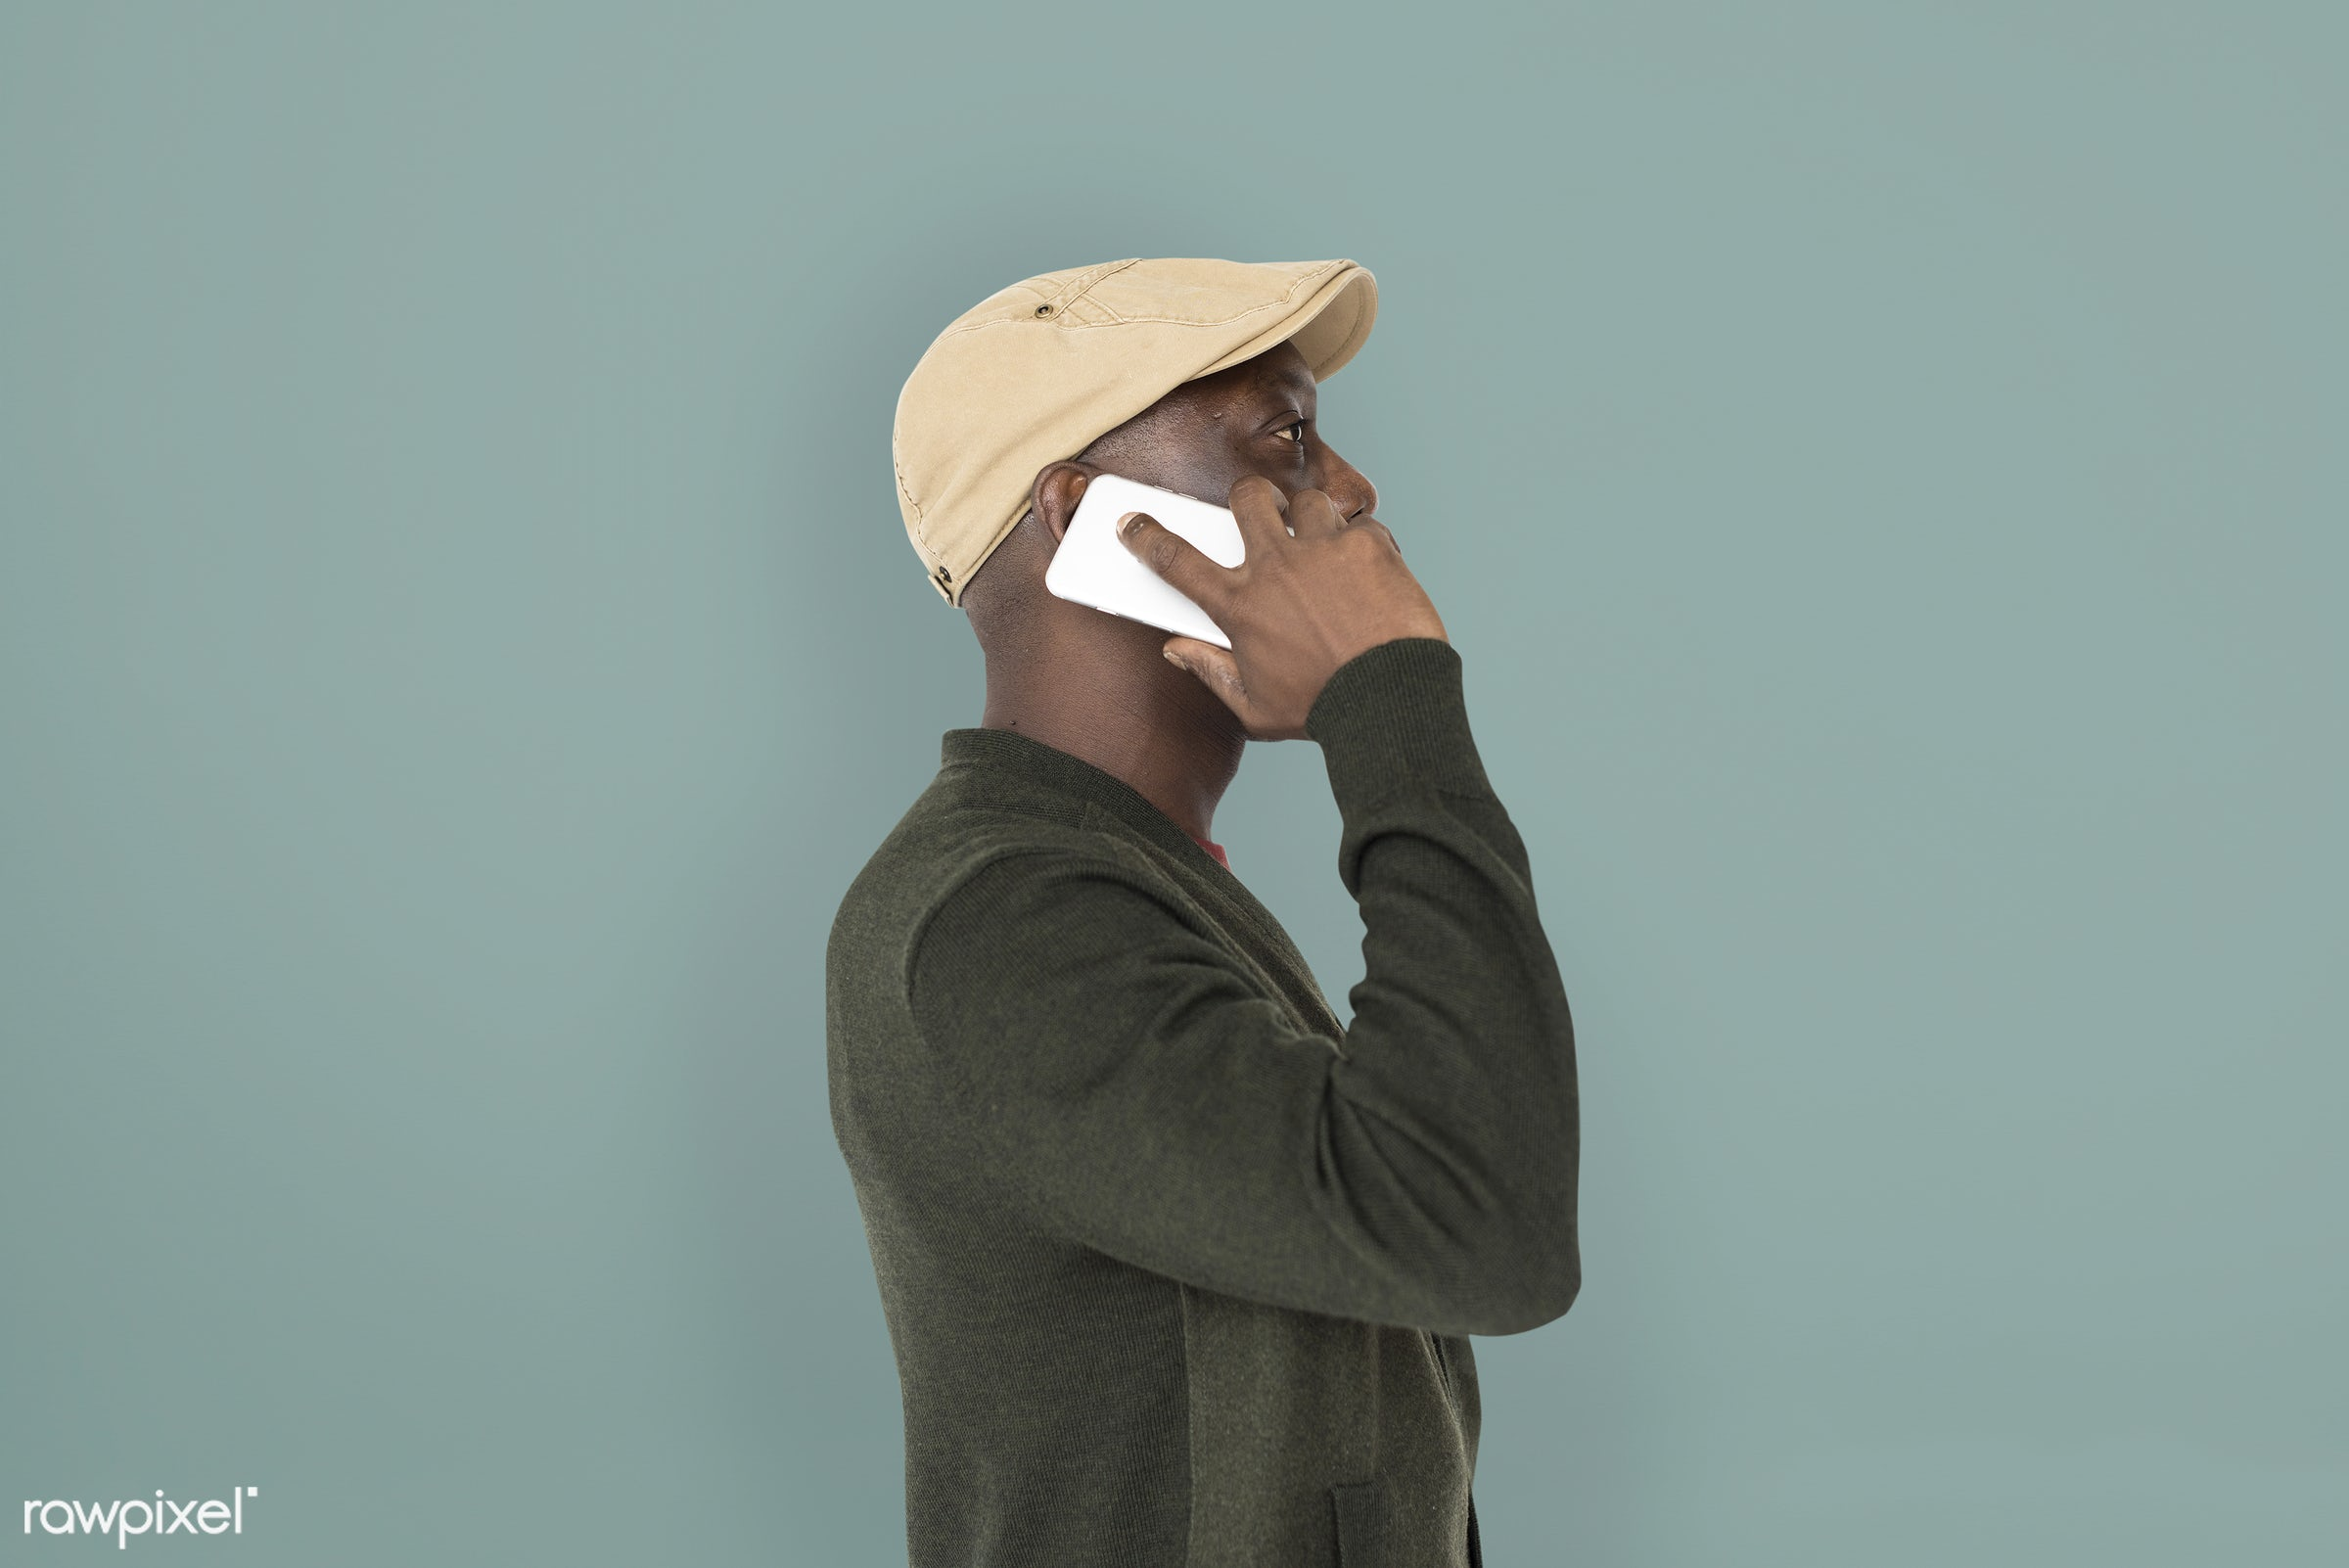 expression, person, phone, side view, people, telecommunication, casual, mobile phone, serious, man, black, casual dressing...